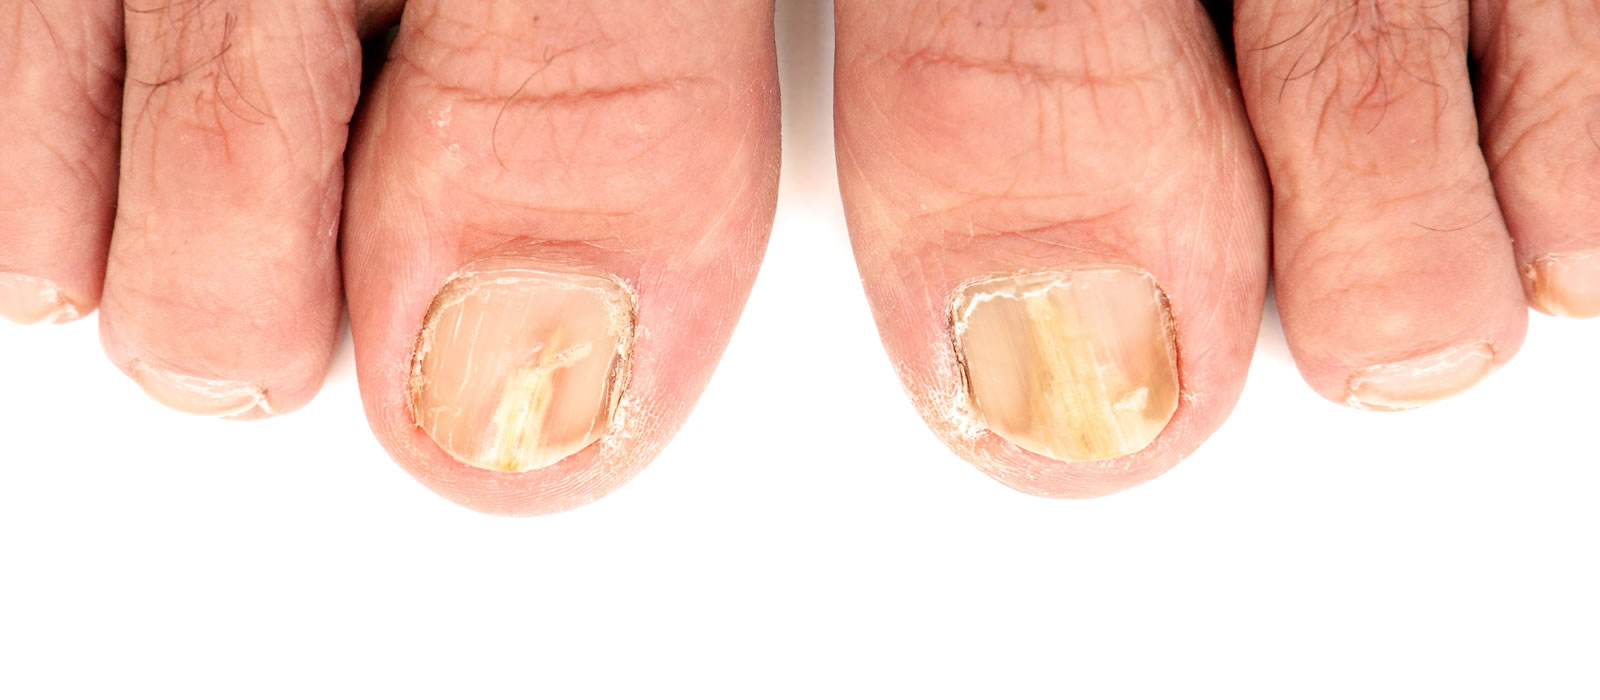 Toenail Fungus: Causes, Symptoms, and Treatments | Dr. Geller